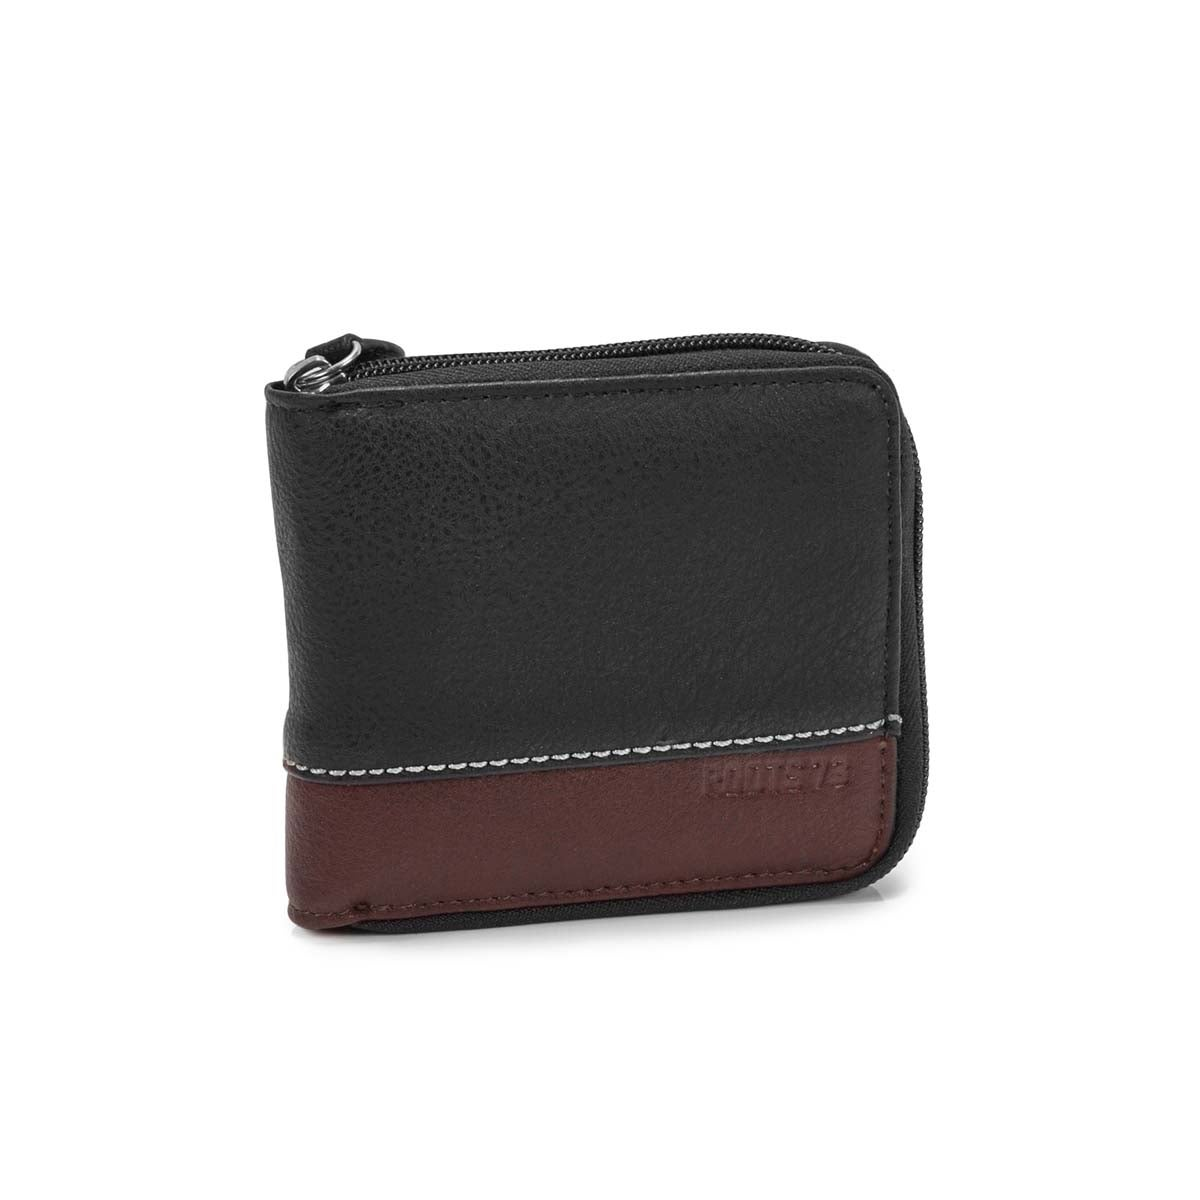 Men's HARMONY black billfold wallet